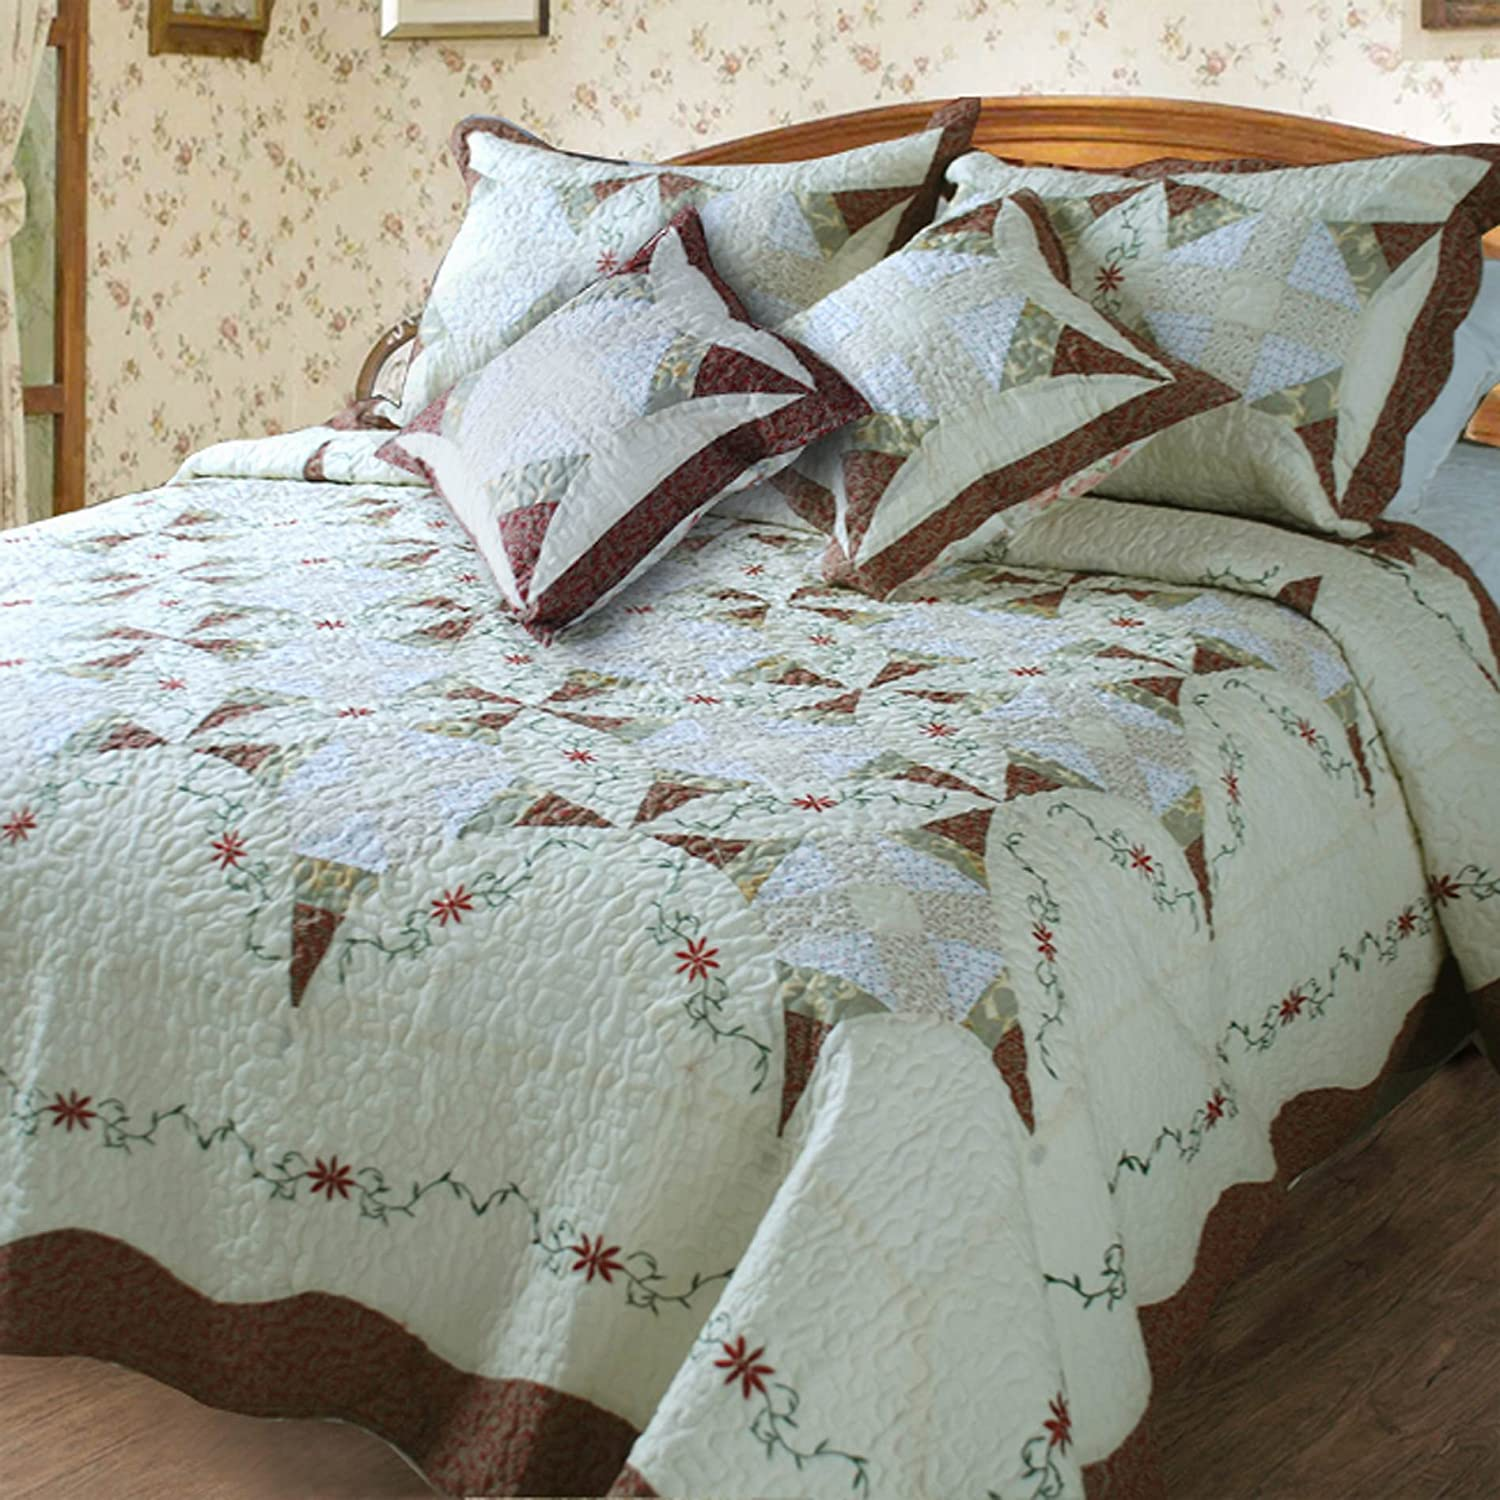 2 Classic Cotton 5-Piece Quilt Set, Queen, Patchwork, Ivory